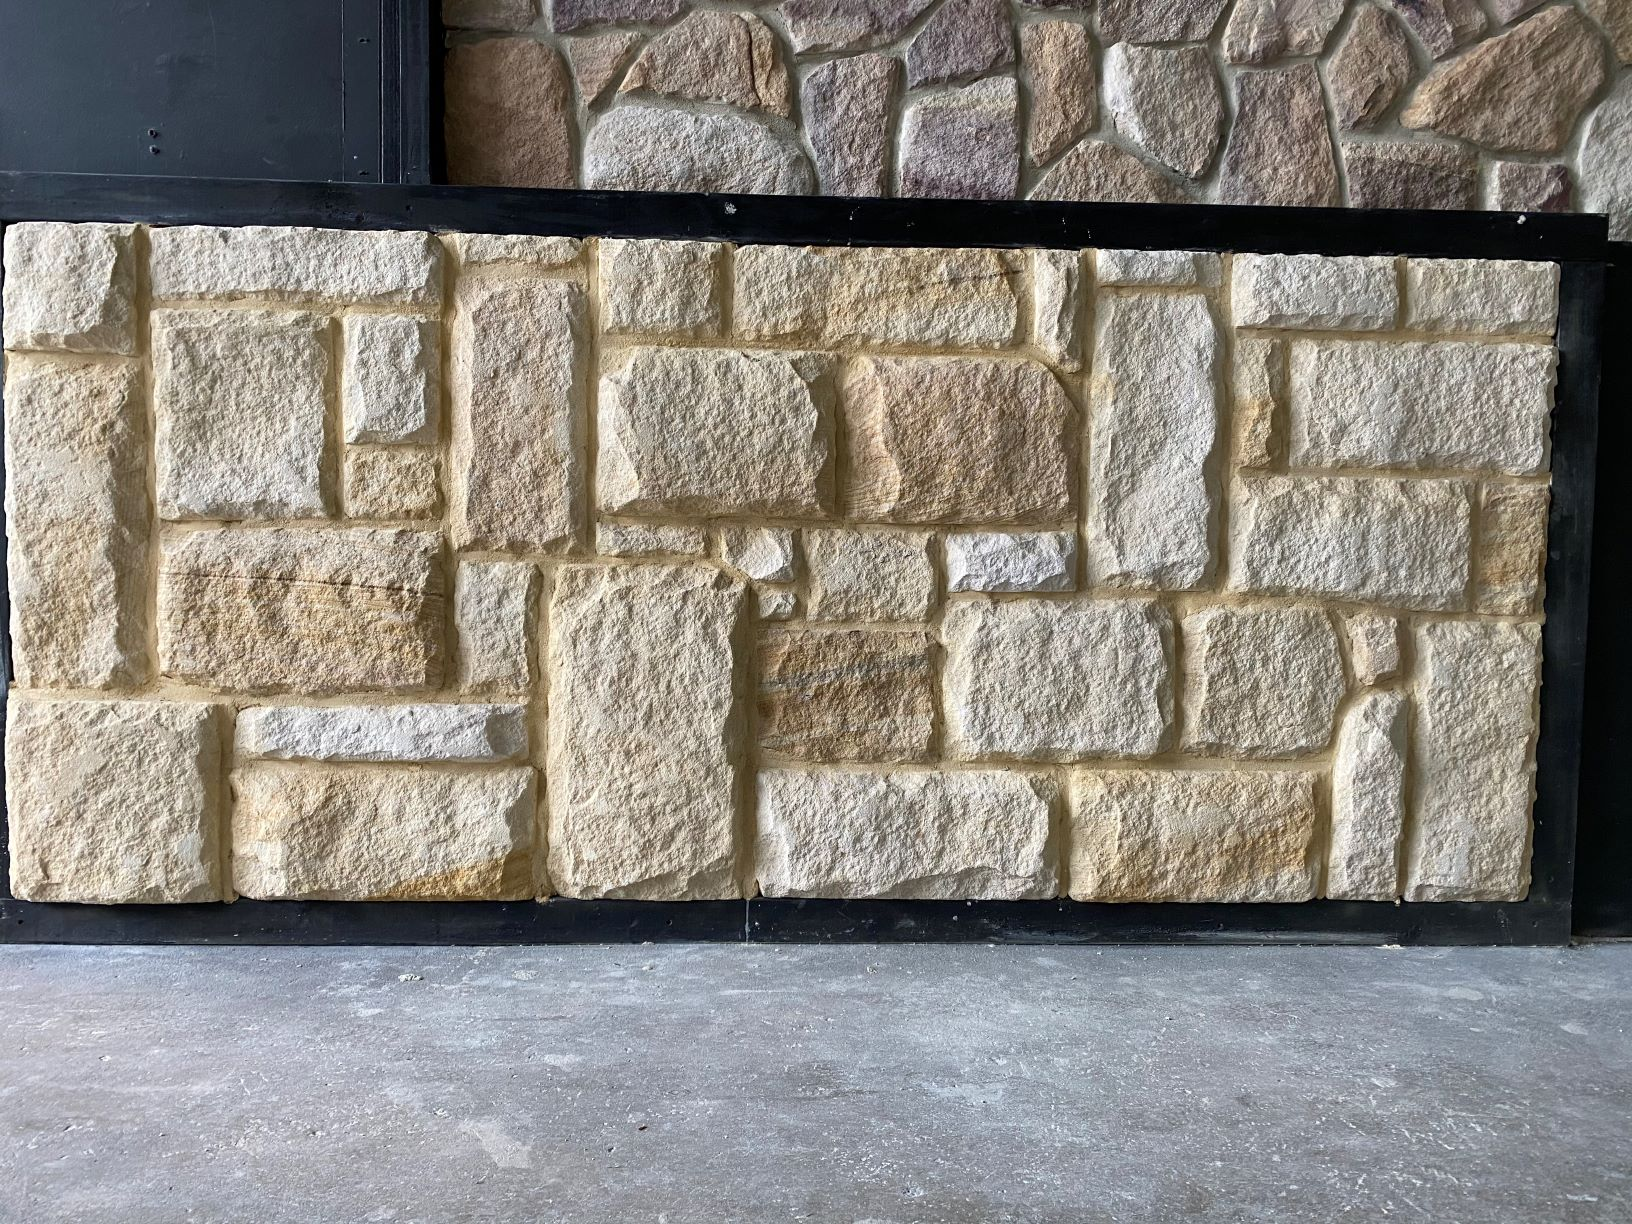 Rustic walling stone display in Aussietecture sydney showroom